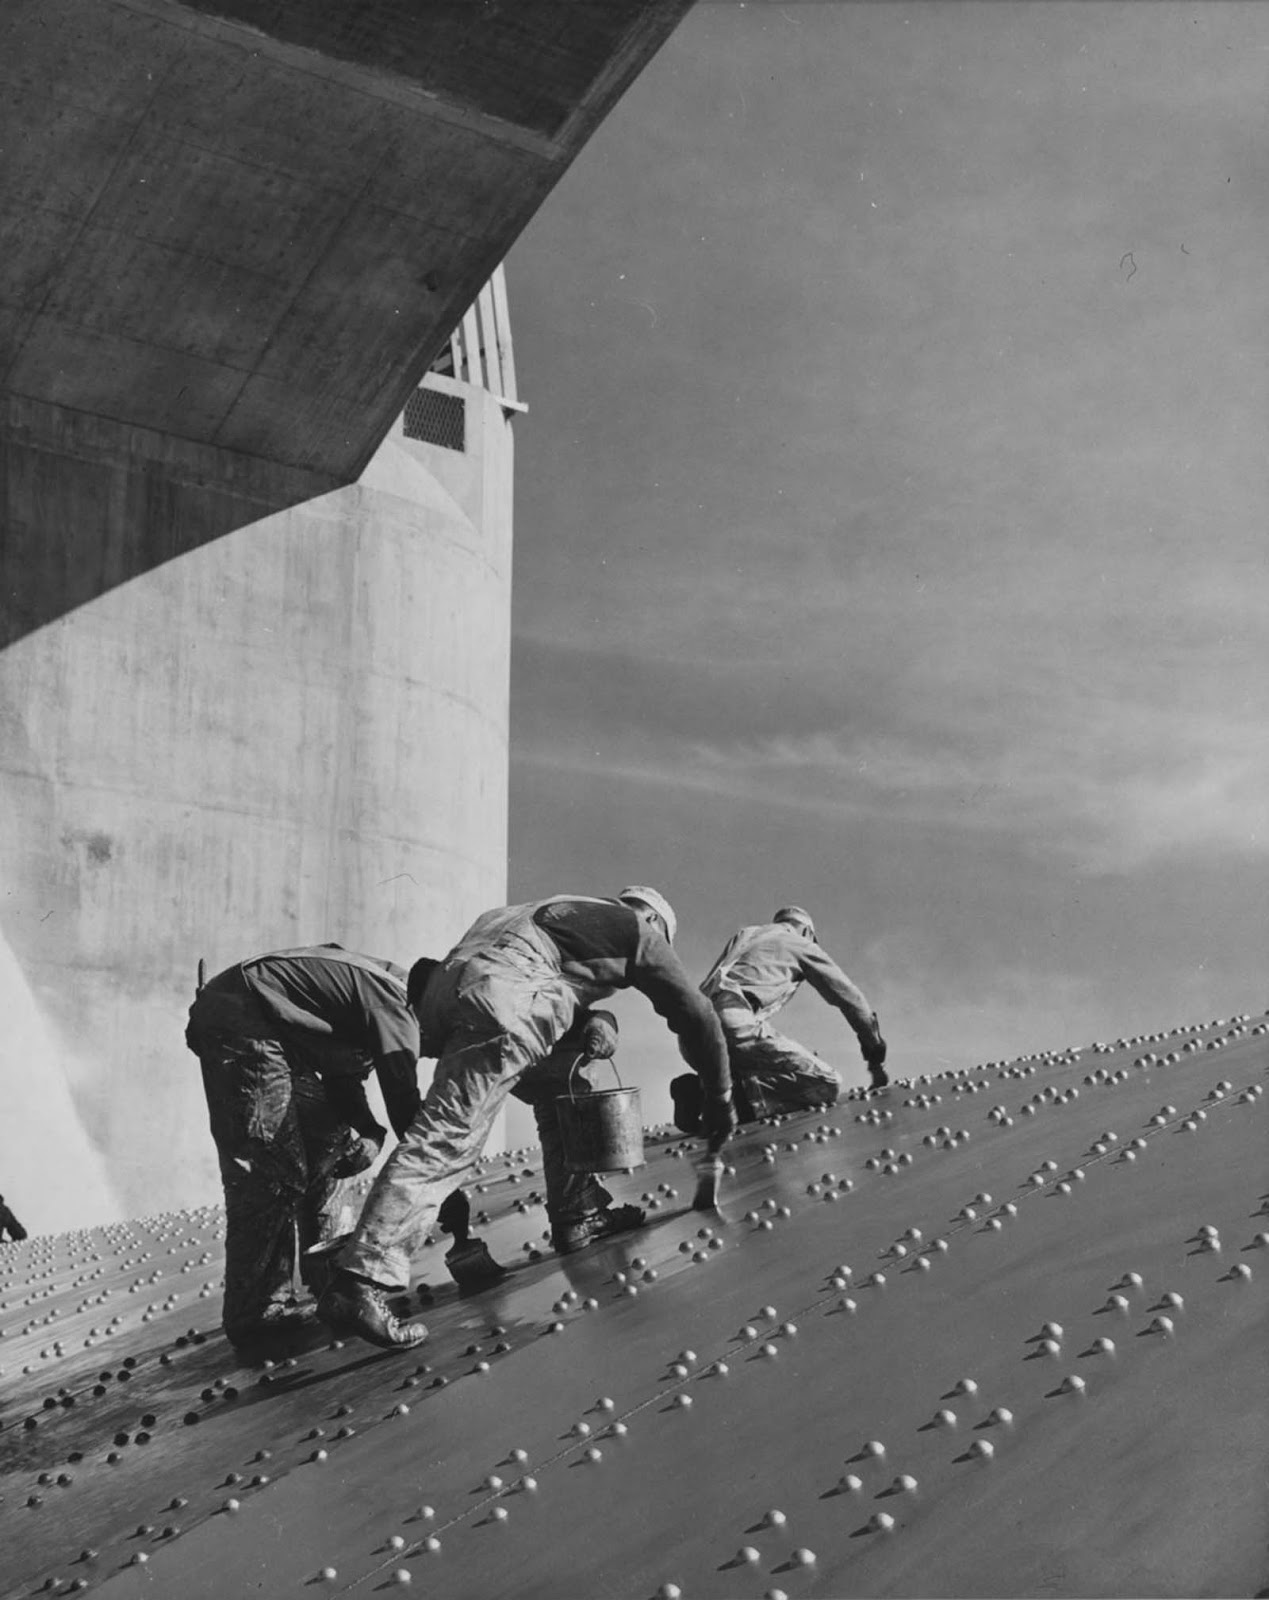 Workers apply a coat of paint to one of the dam's spillways. 1936.